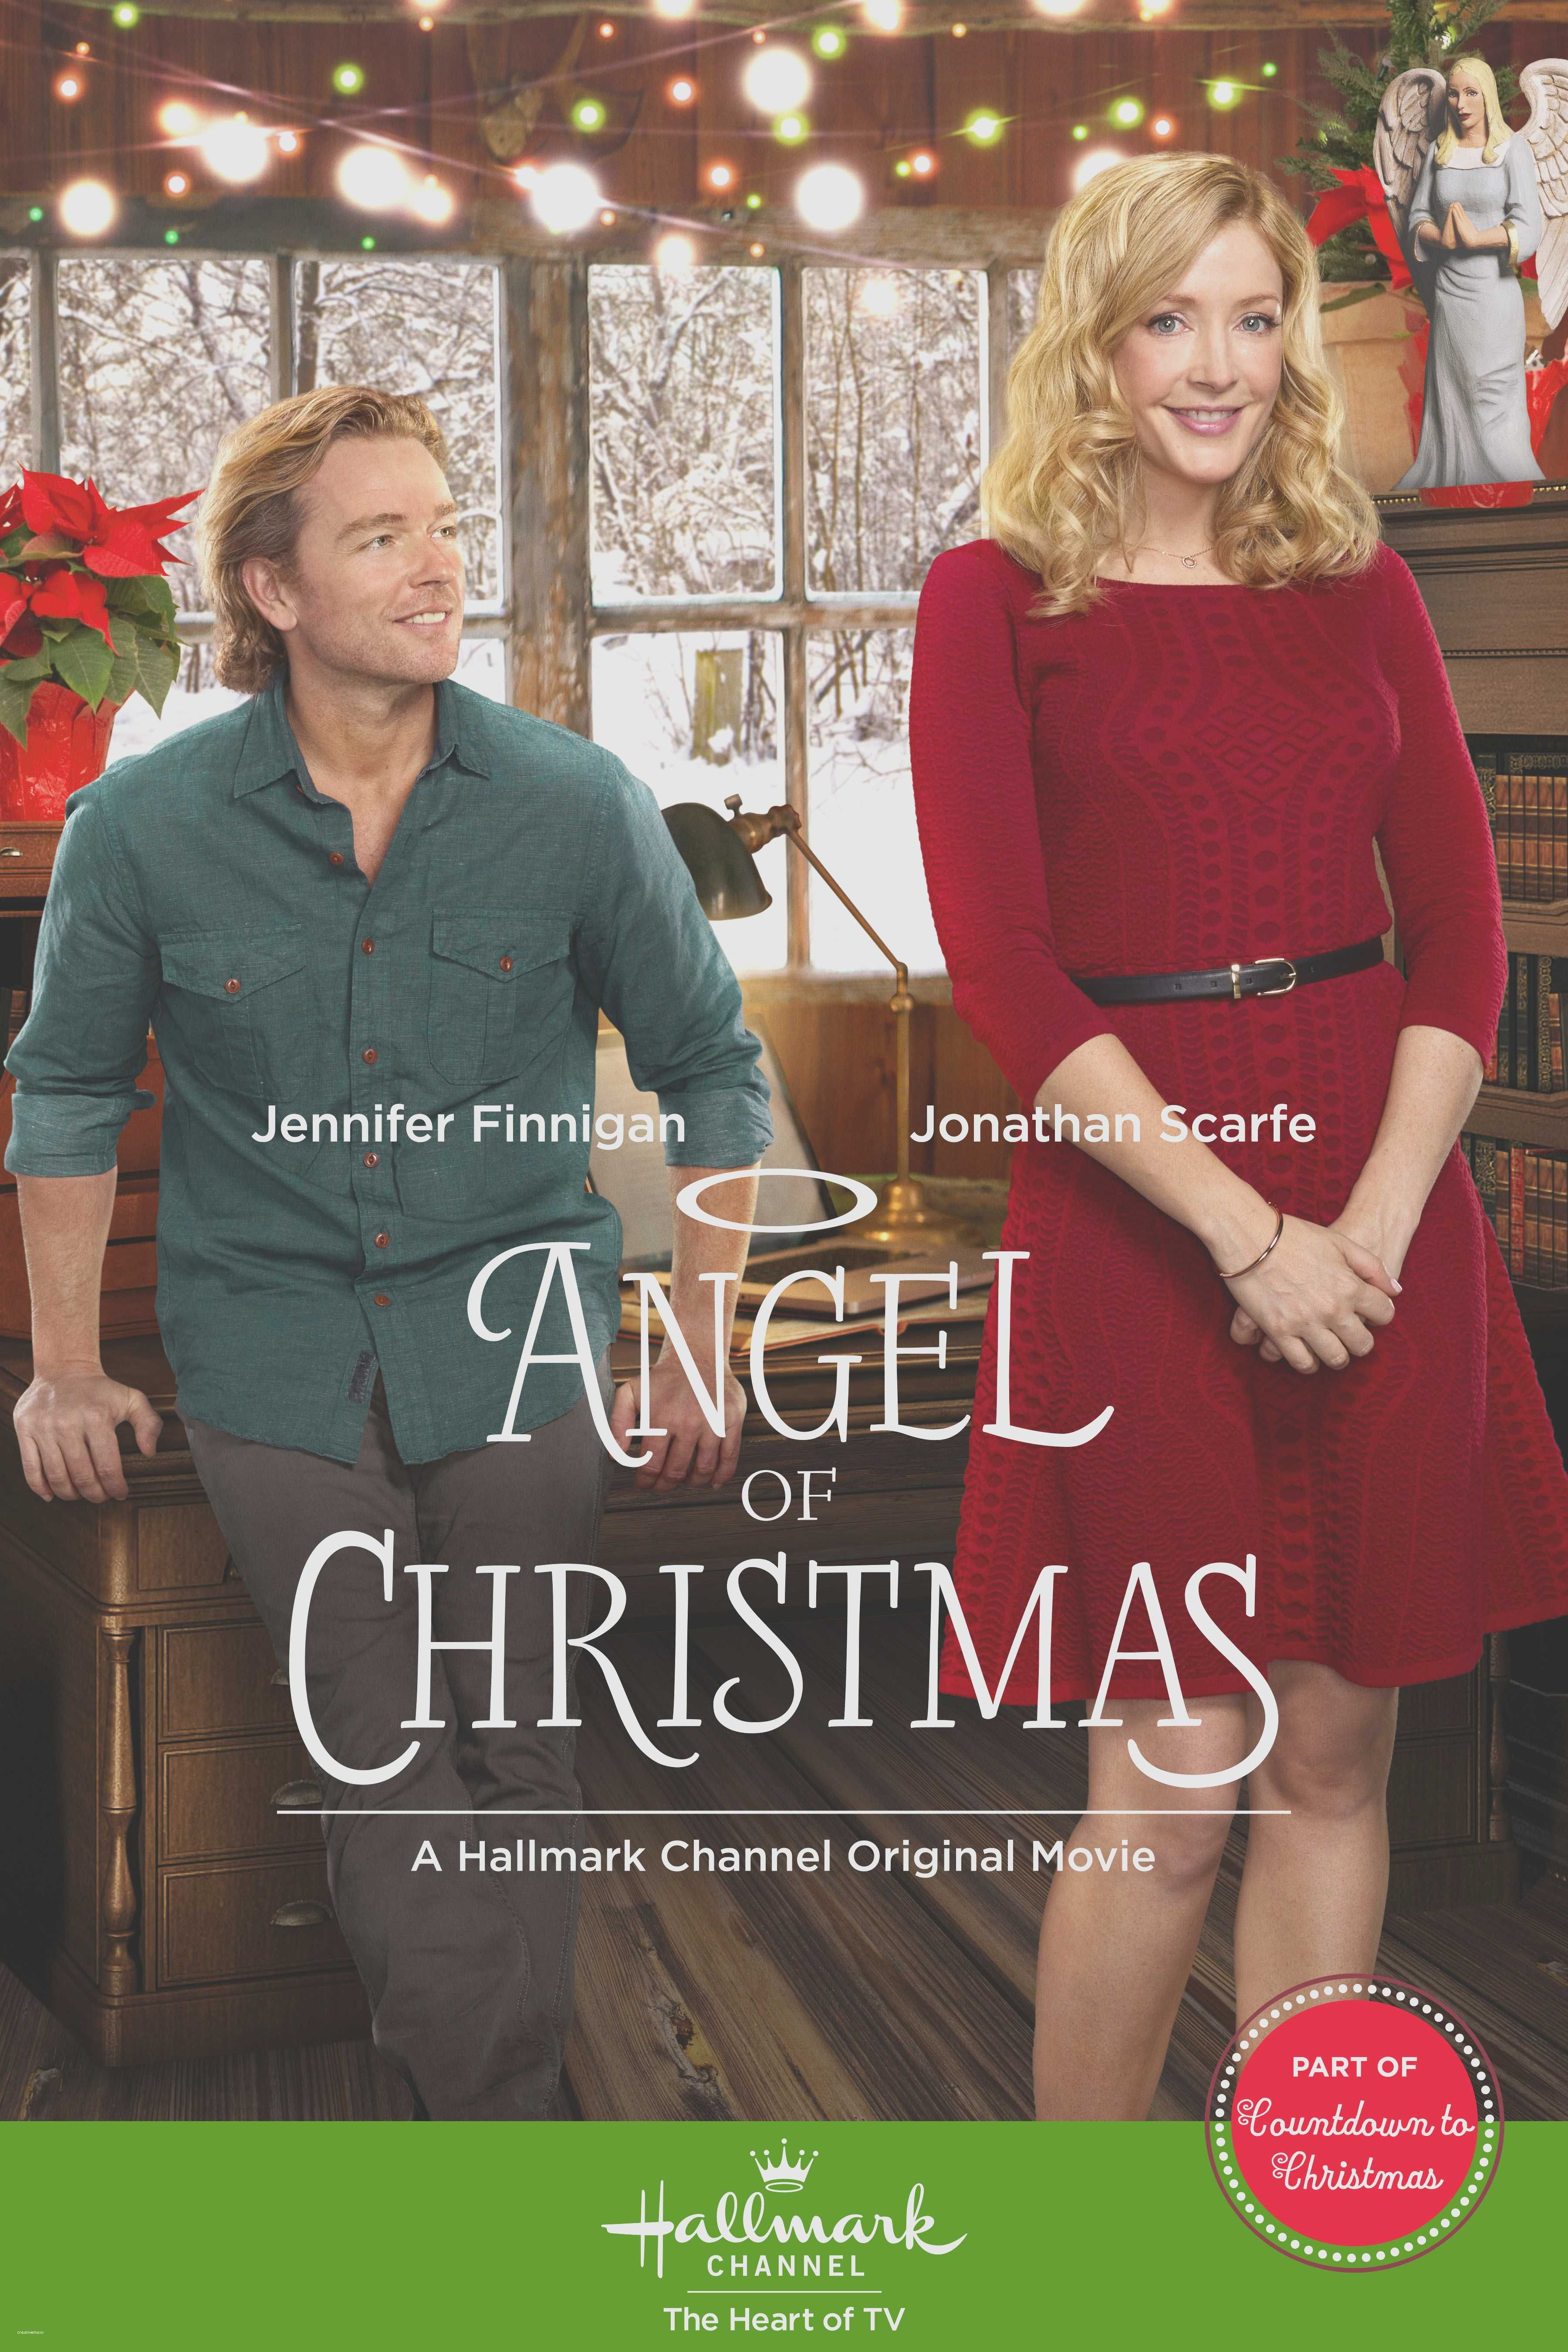 Sharing Christmas Hallmark.Beautiful Sharing Christmas Hallmark Movie Hallmark Movies